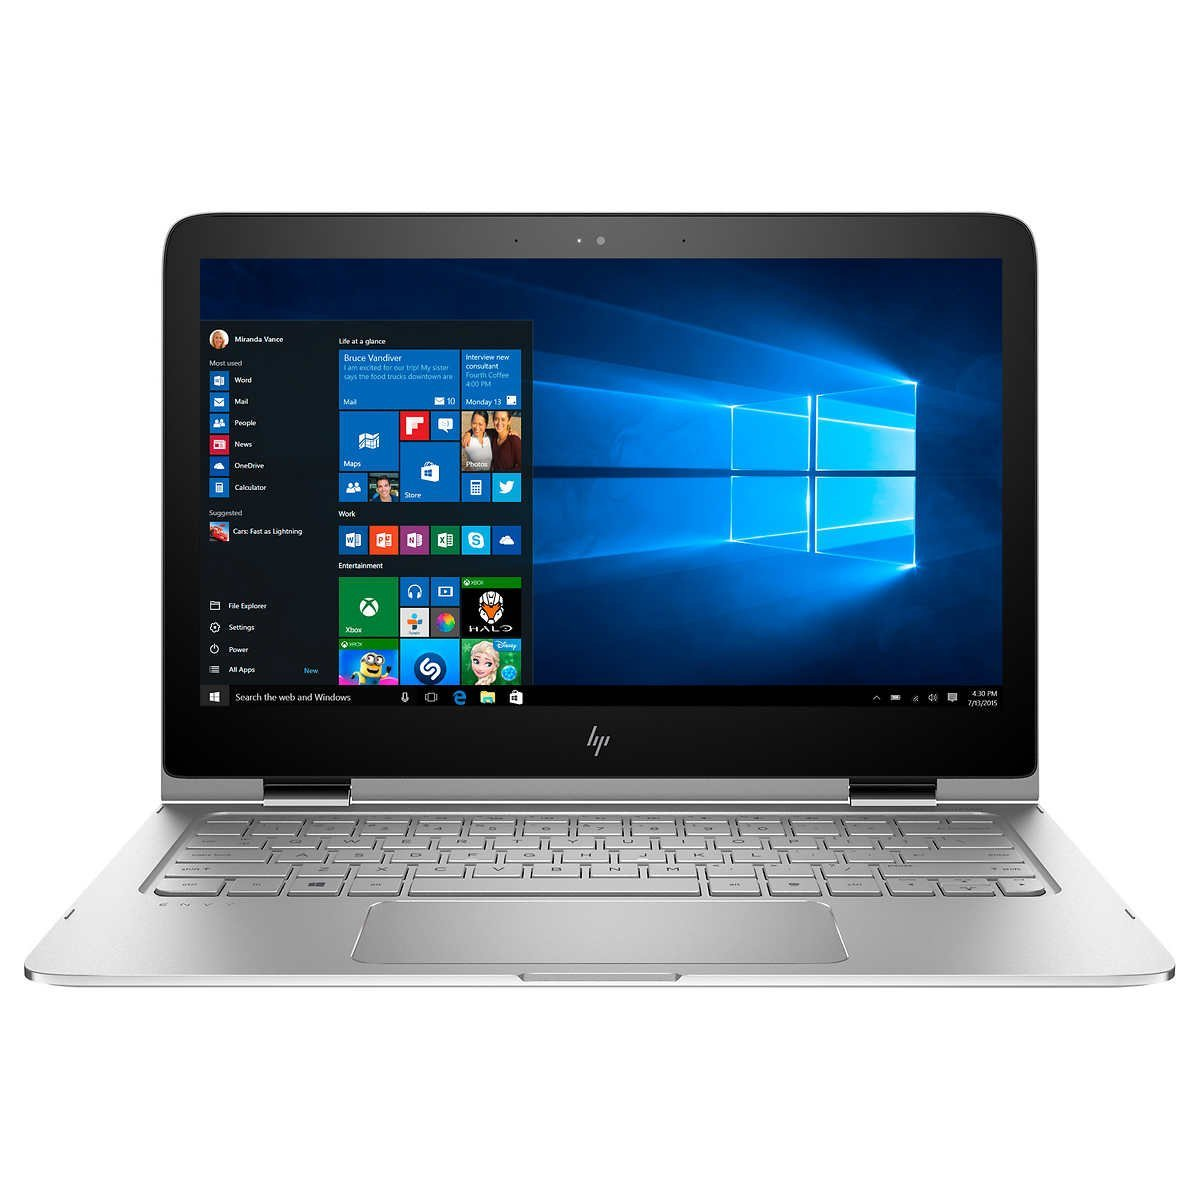 HP 2 in 1 Laptop Tablet Review